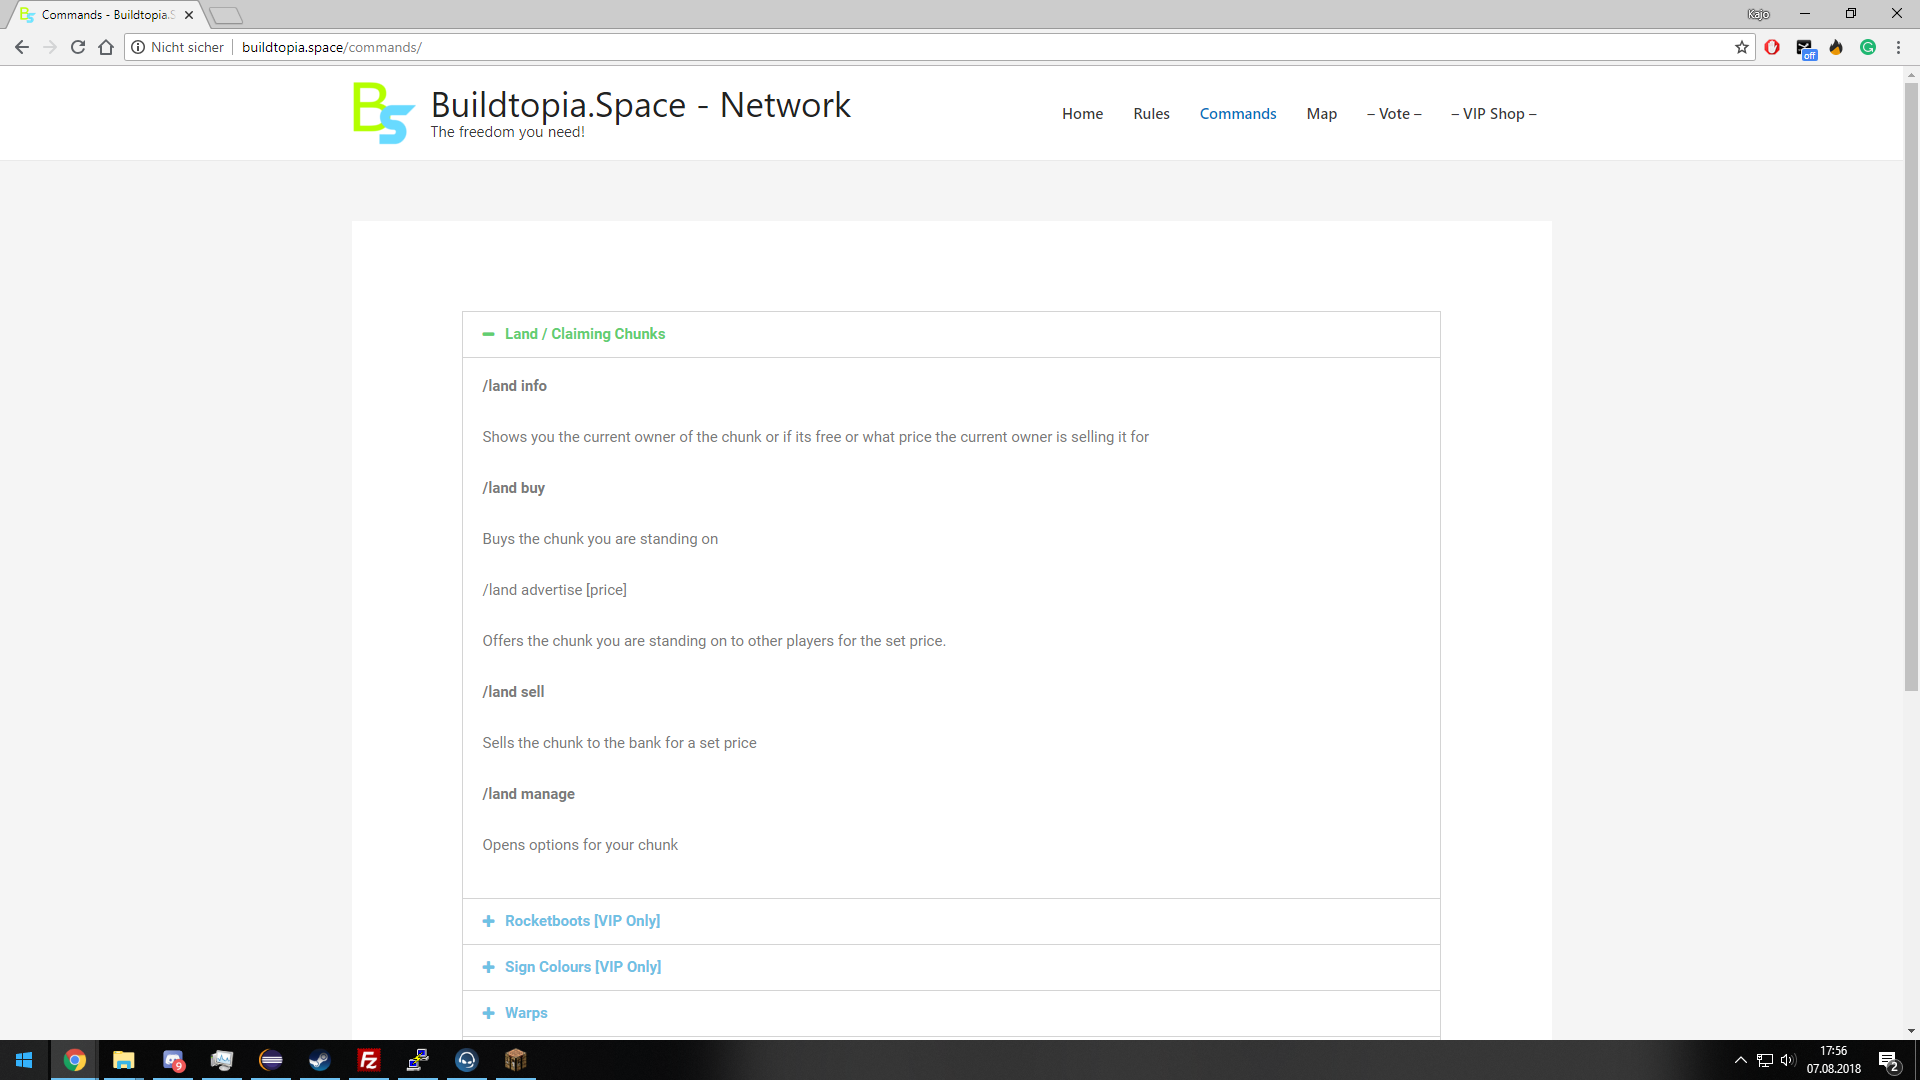 Buildtopia Space - Network - The freedom you need | Details